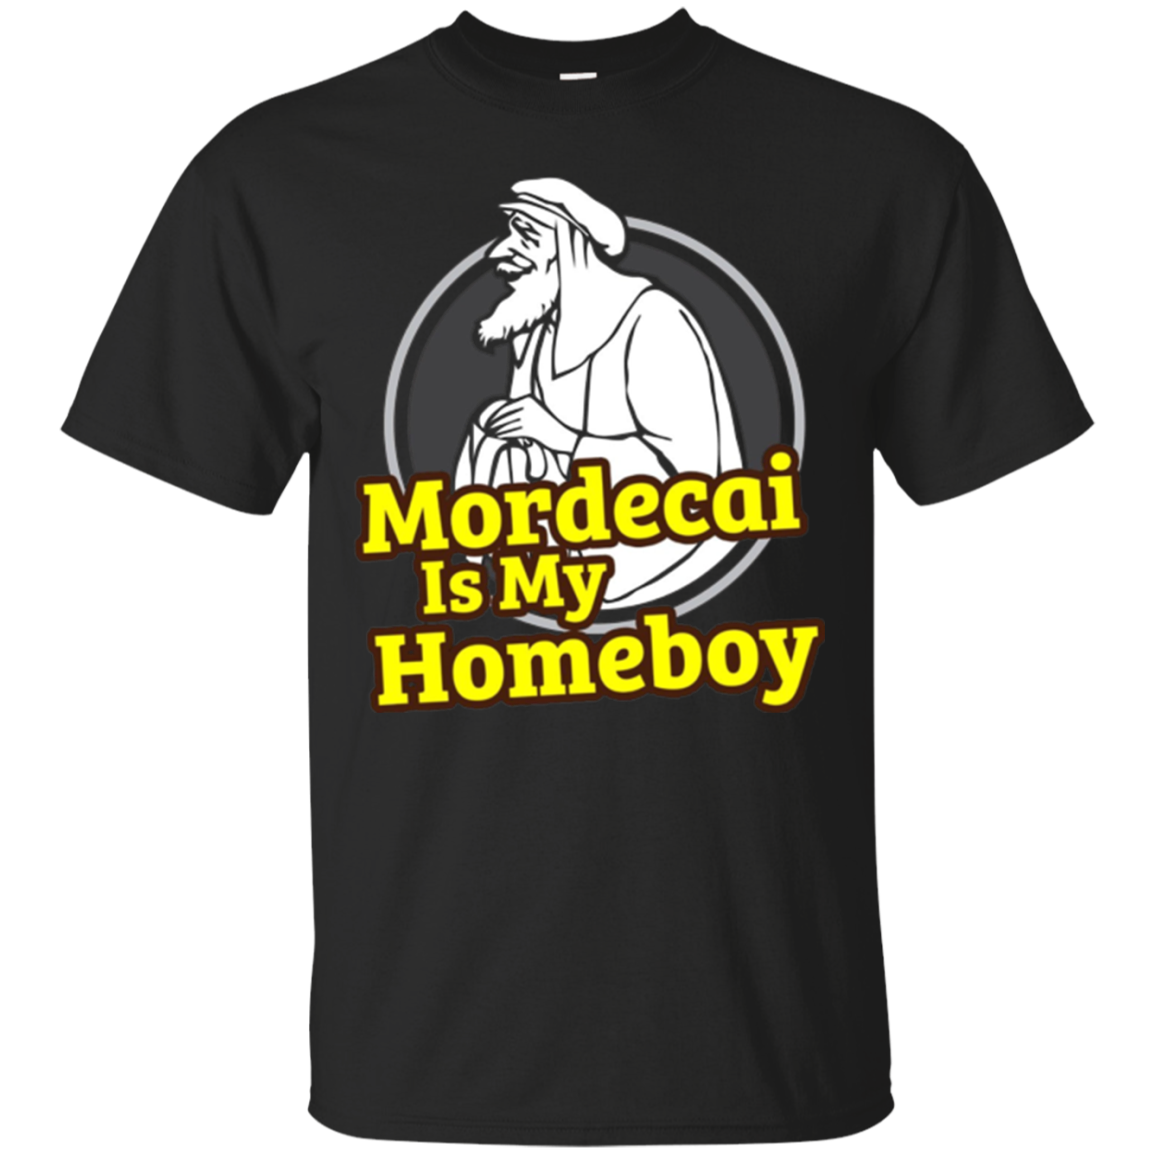 Mordecai Is My Homeboy Purim T-Shirt Funny Jewish Costume